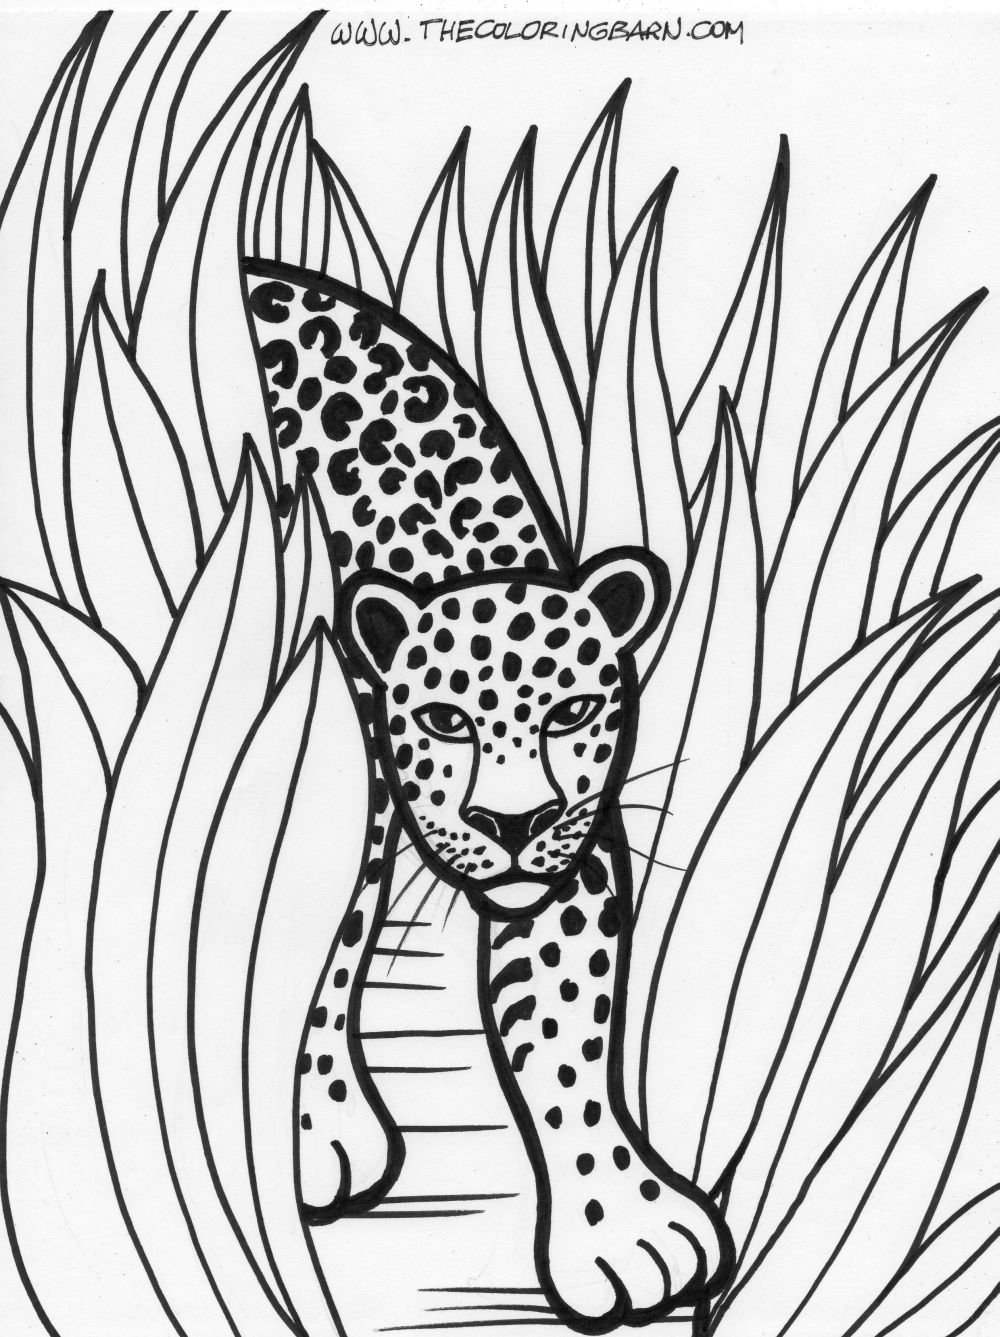 coloring sheets jungle jungle coloring pages to download and print for free coloring sheets jungle